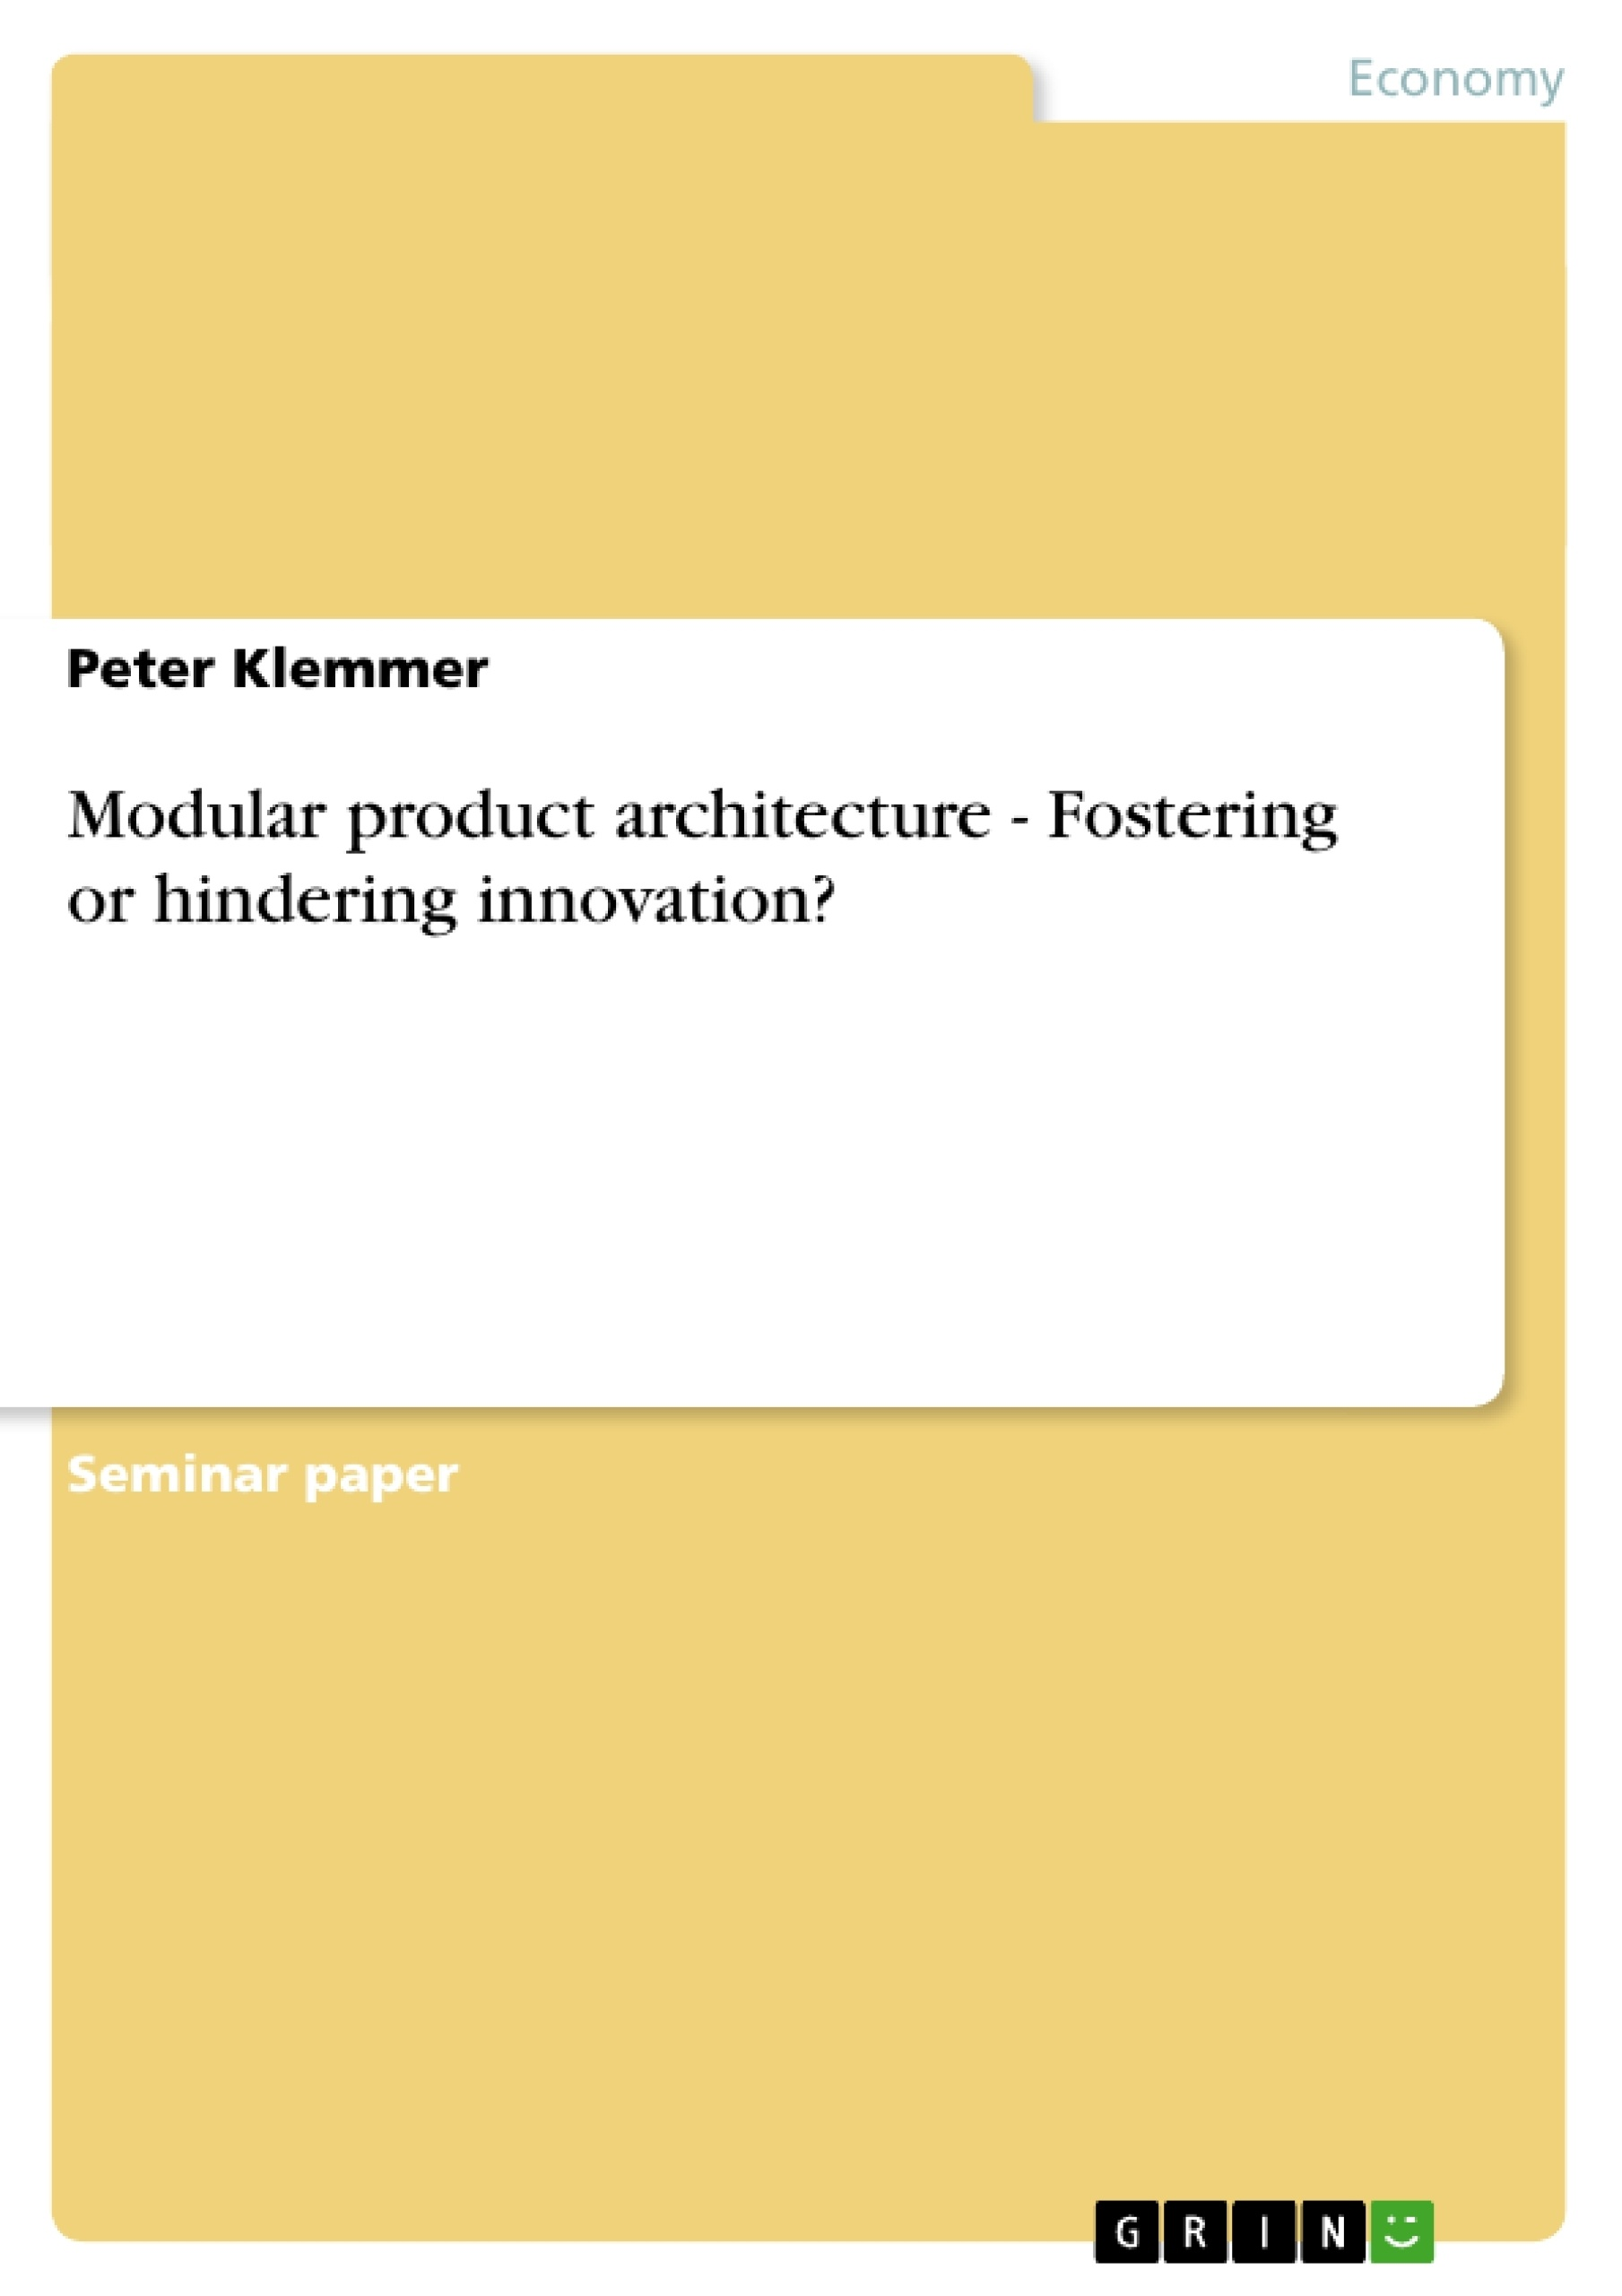 Title: Modular product architecture  -  Fostering or hindering innovation?